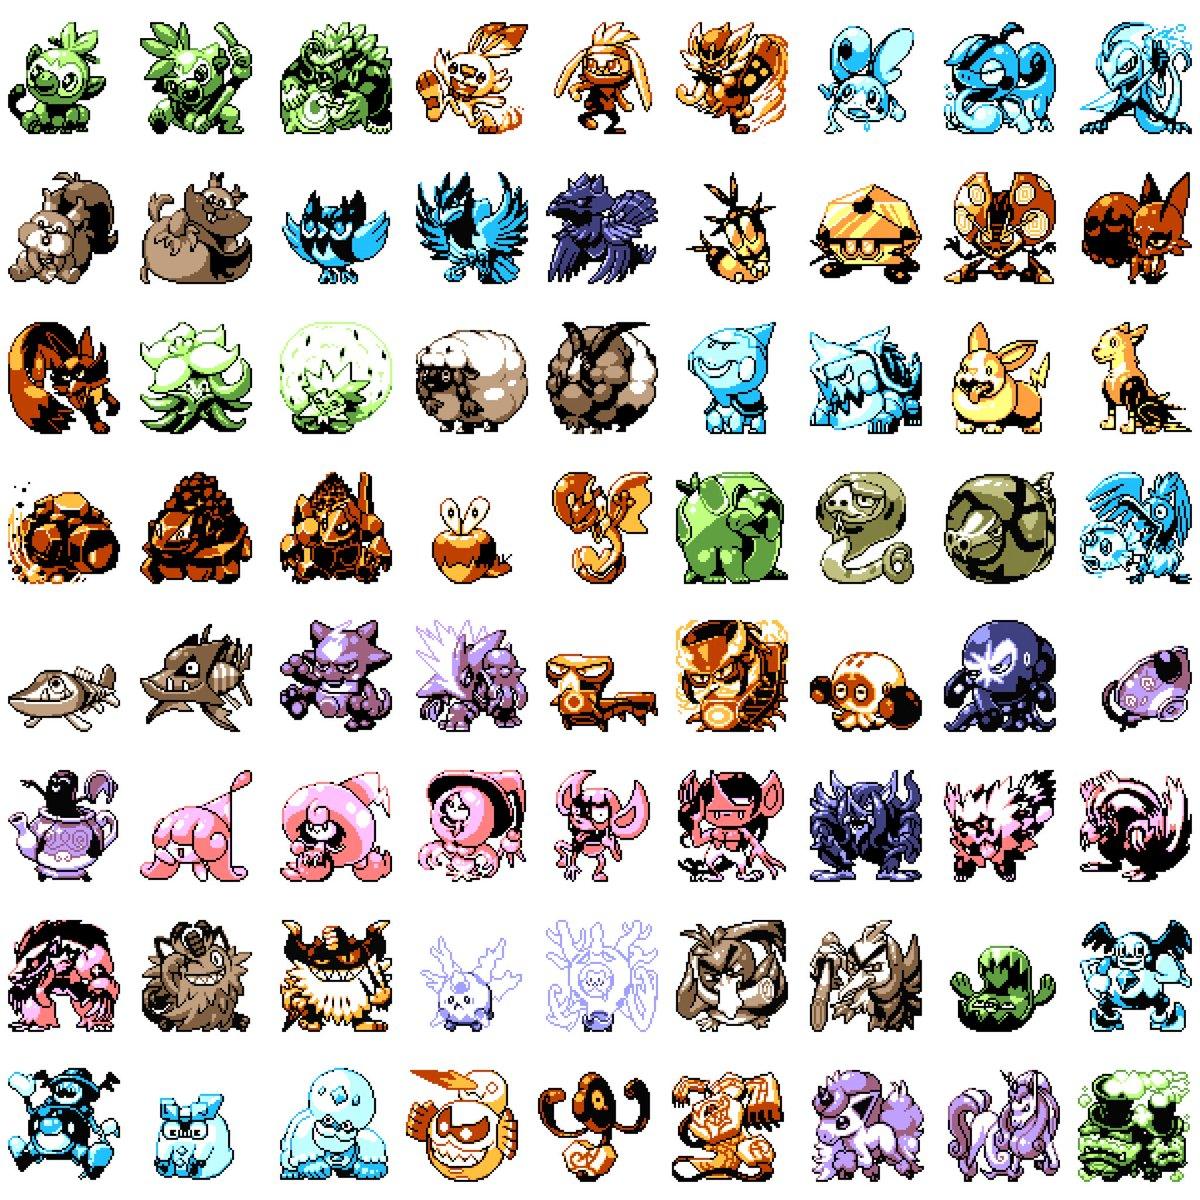 (Of course I posted the wrong version) NOW here are all of the Pokemon from generation 8 in pixel form... #pixelart #pixelartist  #pokemon #nintendo #NintendoSwitch #pokemon25 #gameboy